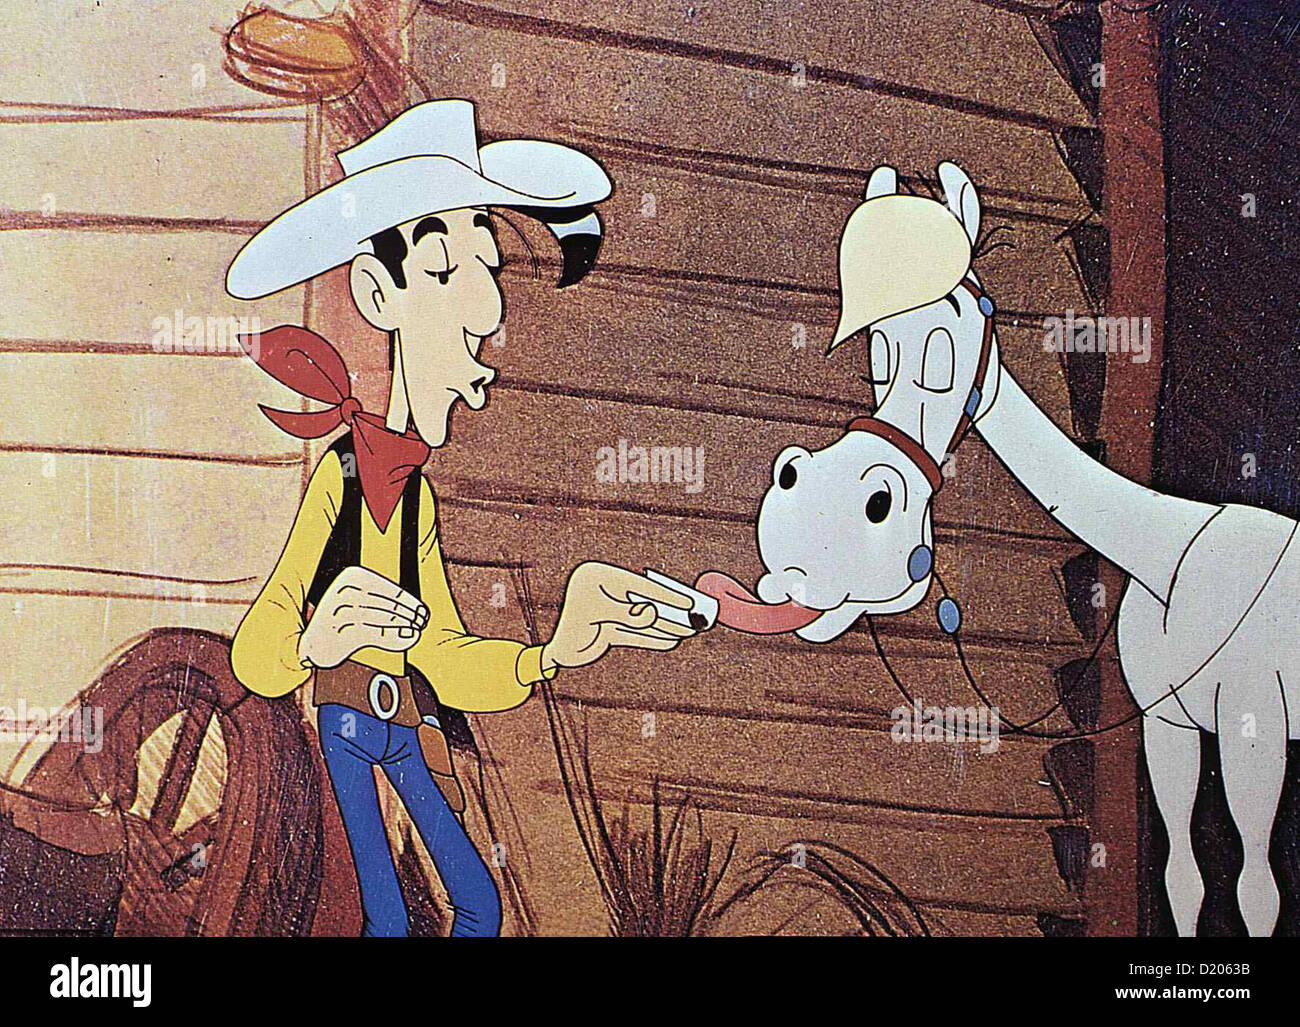 Lucky Luke Lucky Luke Lucky Stock Photos  Lucky Luke Lucky Luke